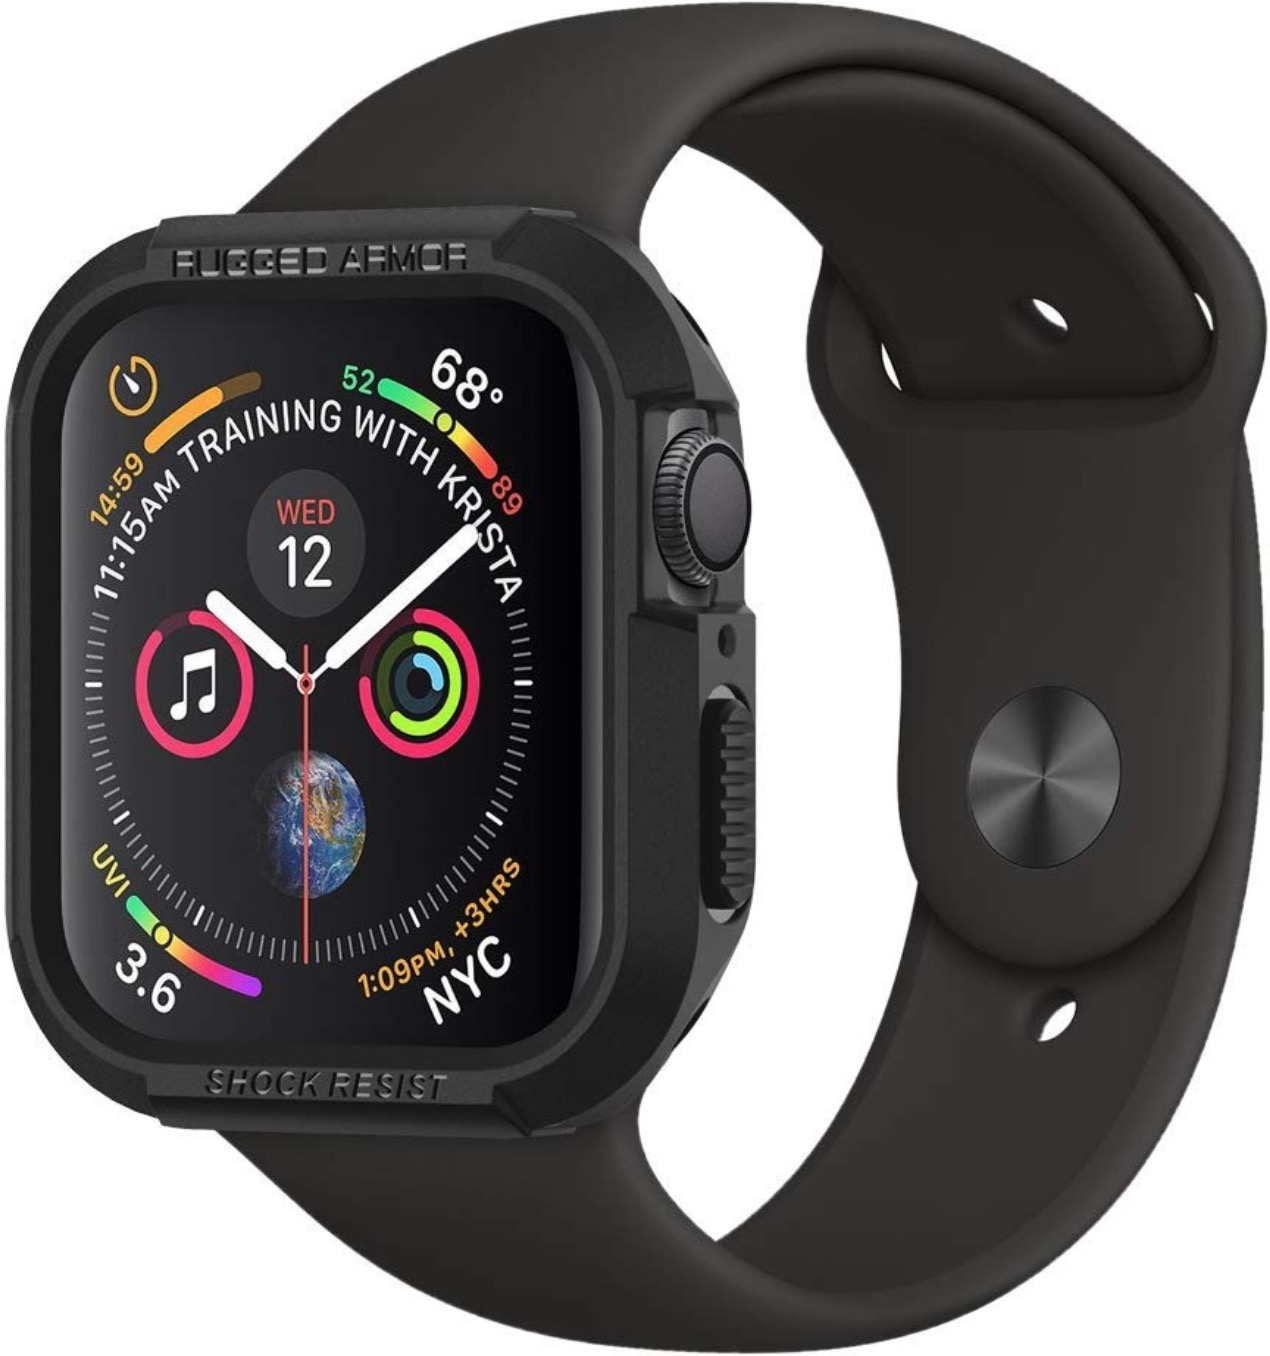 new concept eedff 44512 Best Cases for the Apple Watch Series 4 in 2019 | TechnoBuffalo